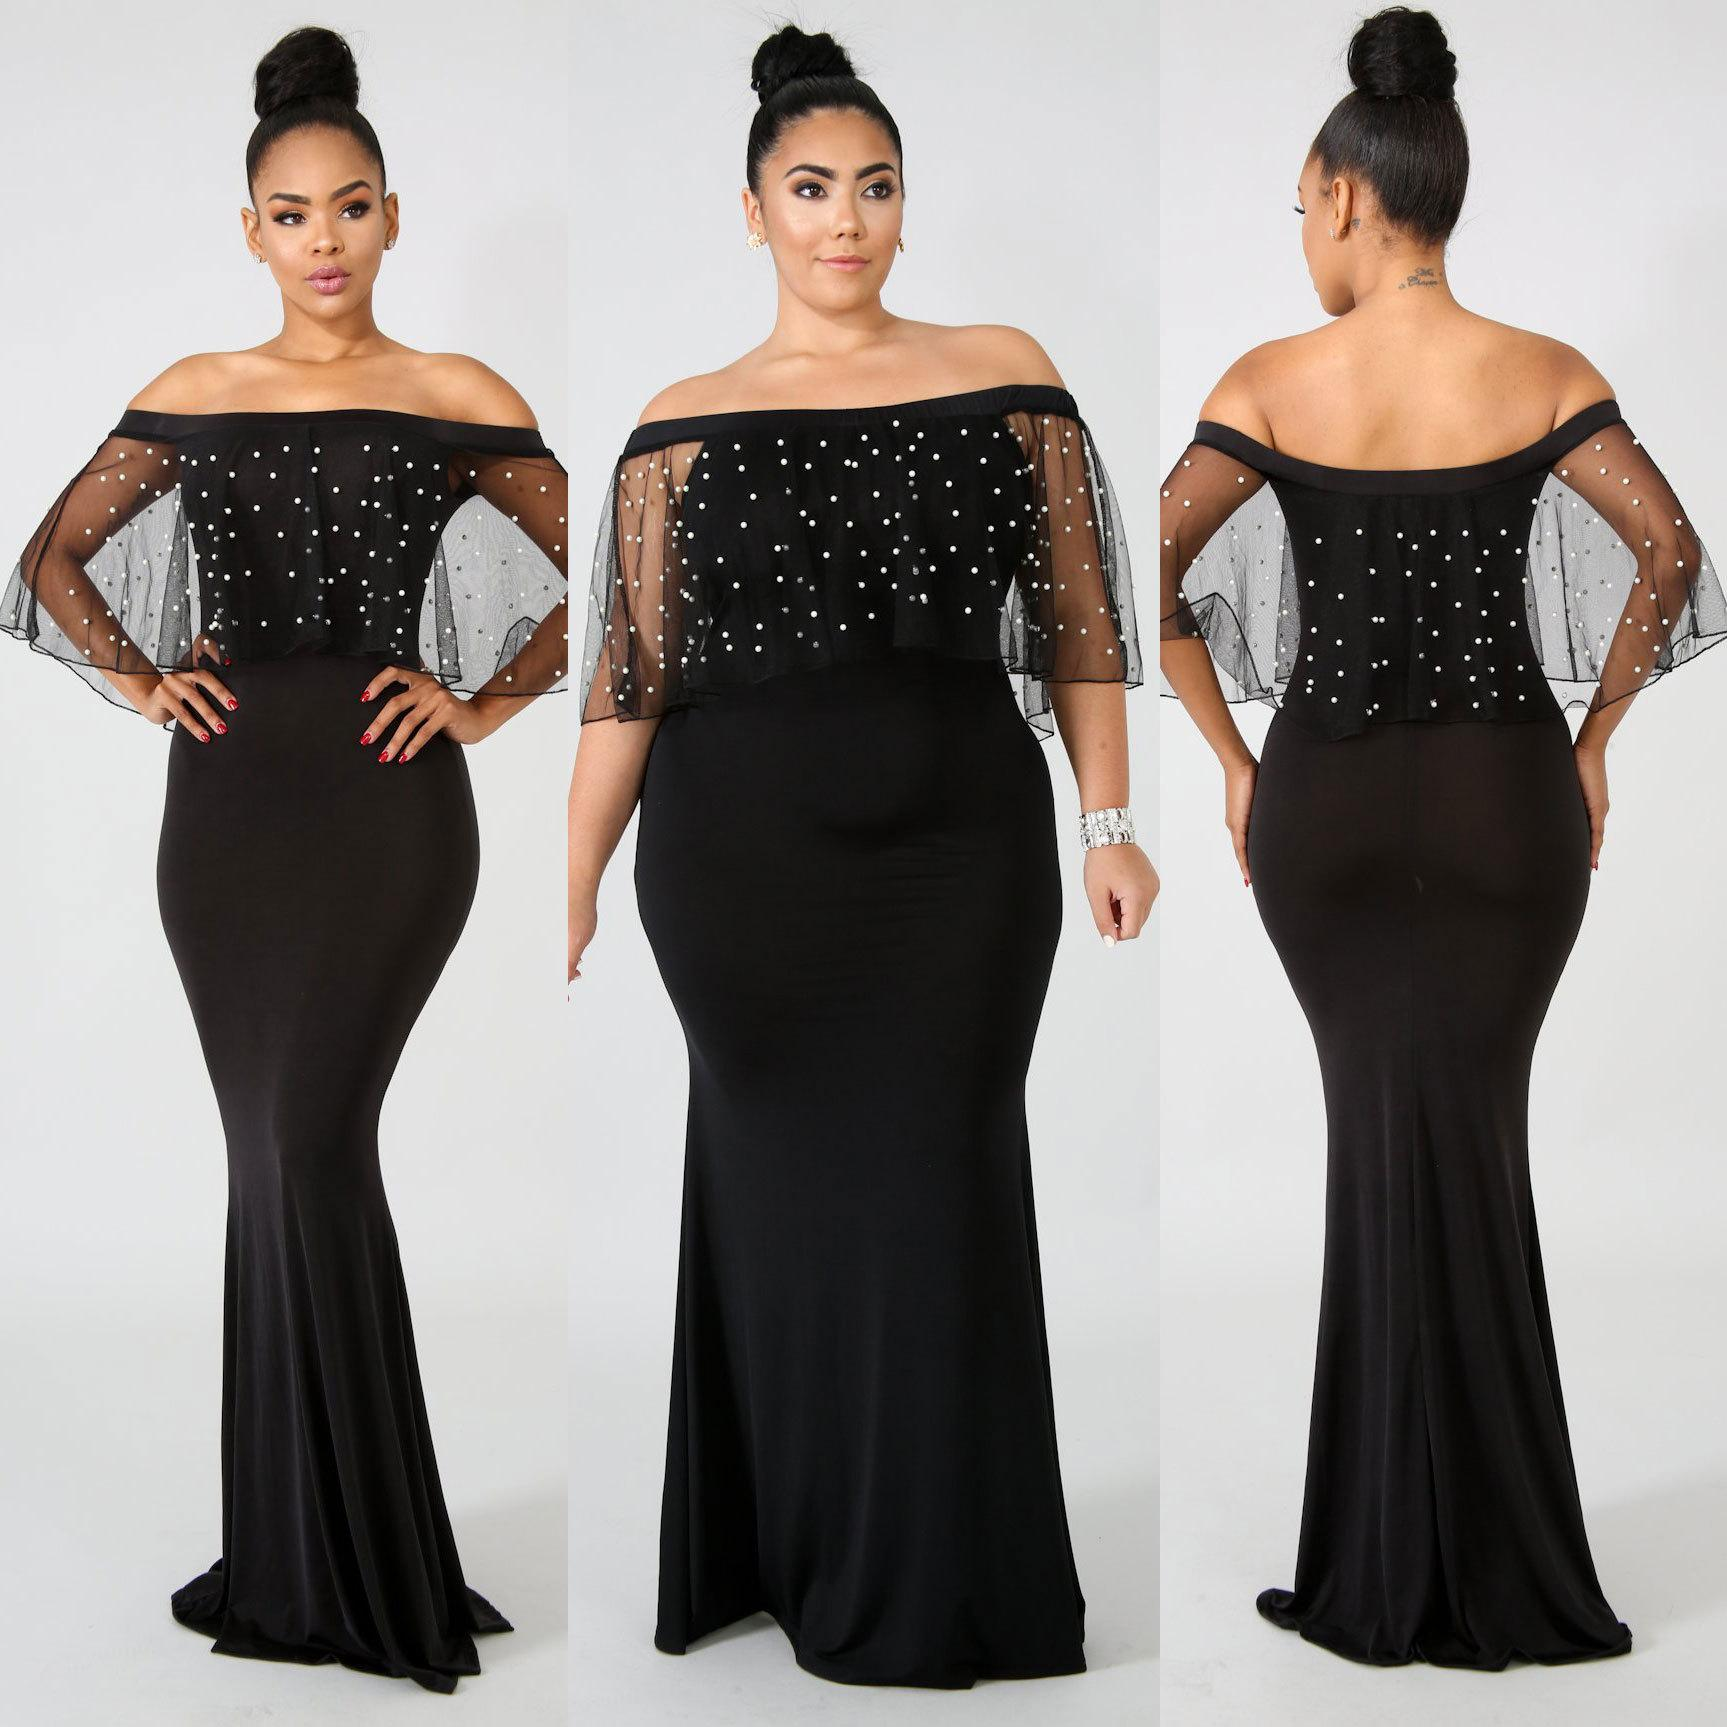 Slash Neck Pearls Mesh Ruffles Women Long Mermaid Dresses Vestidos Black Off Shoulder Floor Length Maxi Party Dress